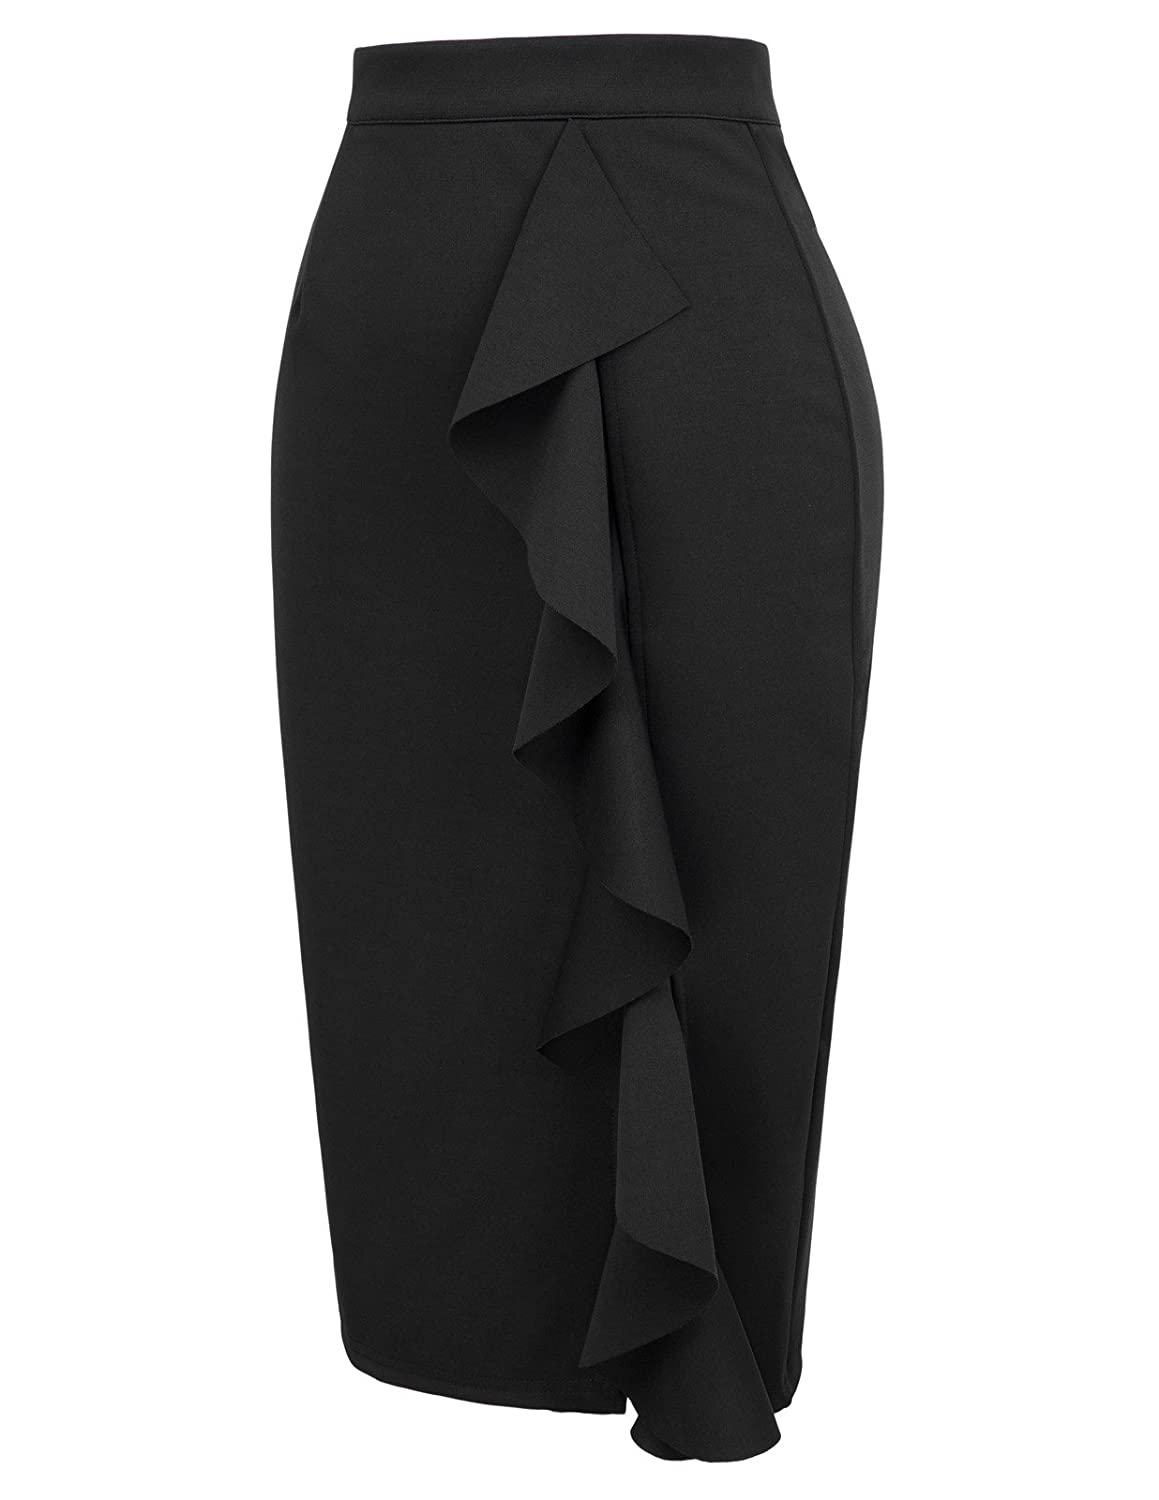 2019 year look- Length Knee business skirts